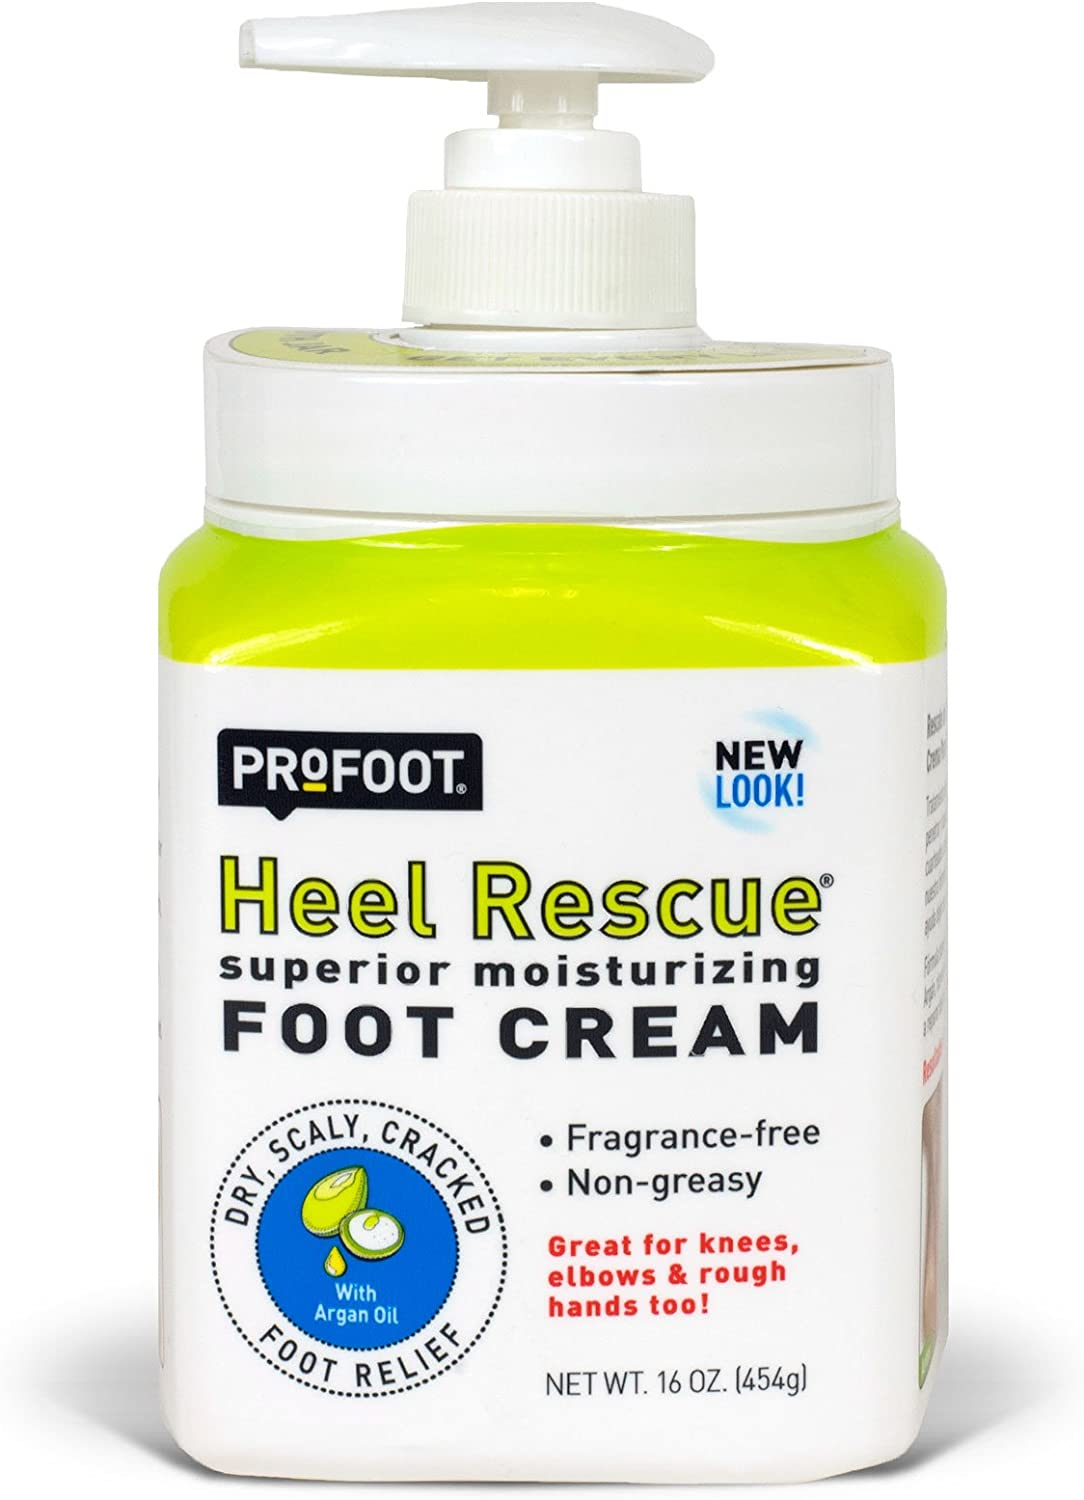 PROFOOT Heel Rescue Foot Cream, 16 Ounce (Pack of 3) Non-Greasy Foot Cream Ideal for Cracked Skin Calloused Skin or Chapped Skin on Feet Heels Elbows and Knees, Penetrates Moisturizes and Repairs